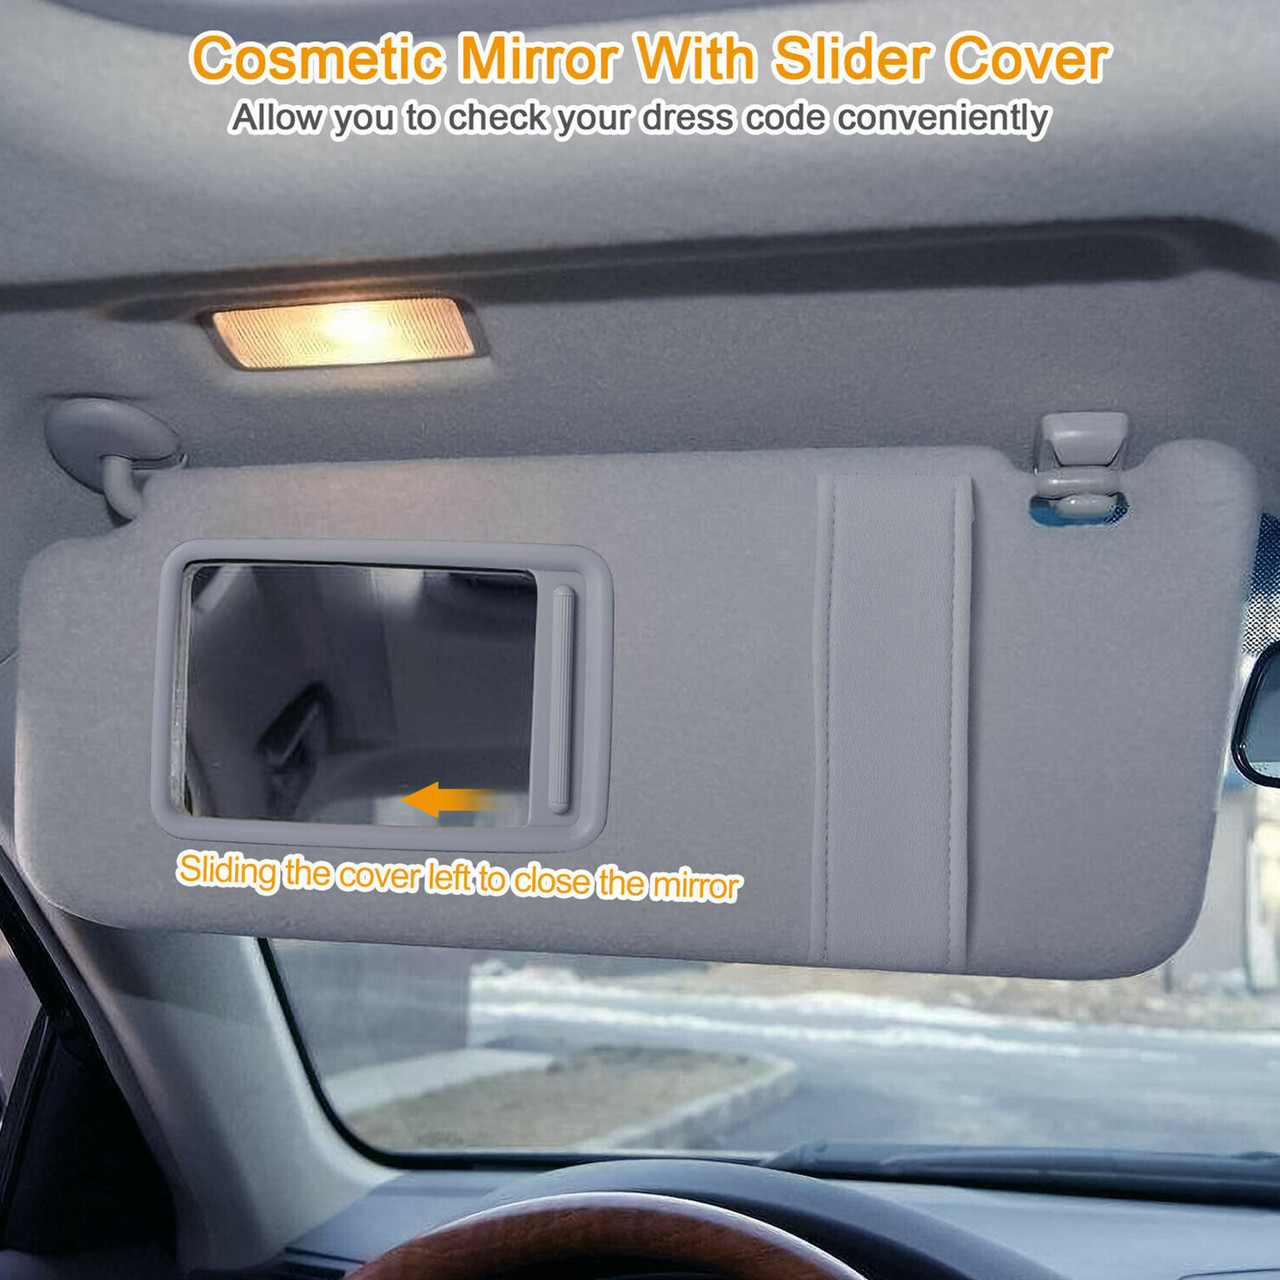 DRIVER LEFT SUN VISOR For TOYOTA VENZA With SUNROOF 74320-0T022-B1 09-16 Gray